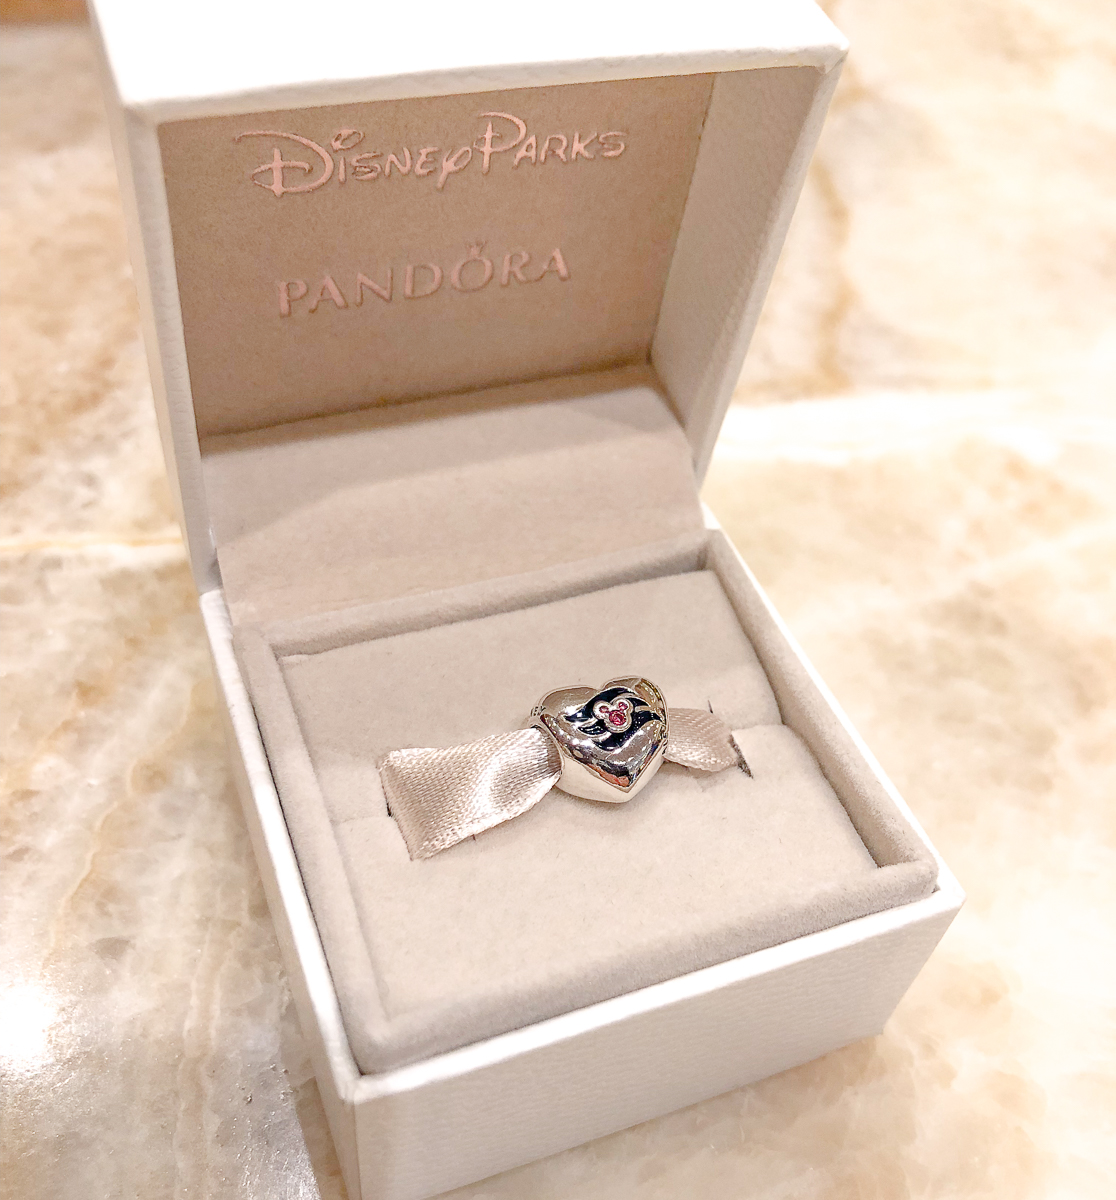 Disney Pandora Charm for a Disney World Souvenir